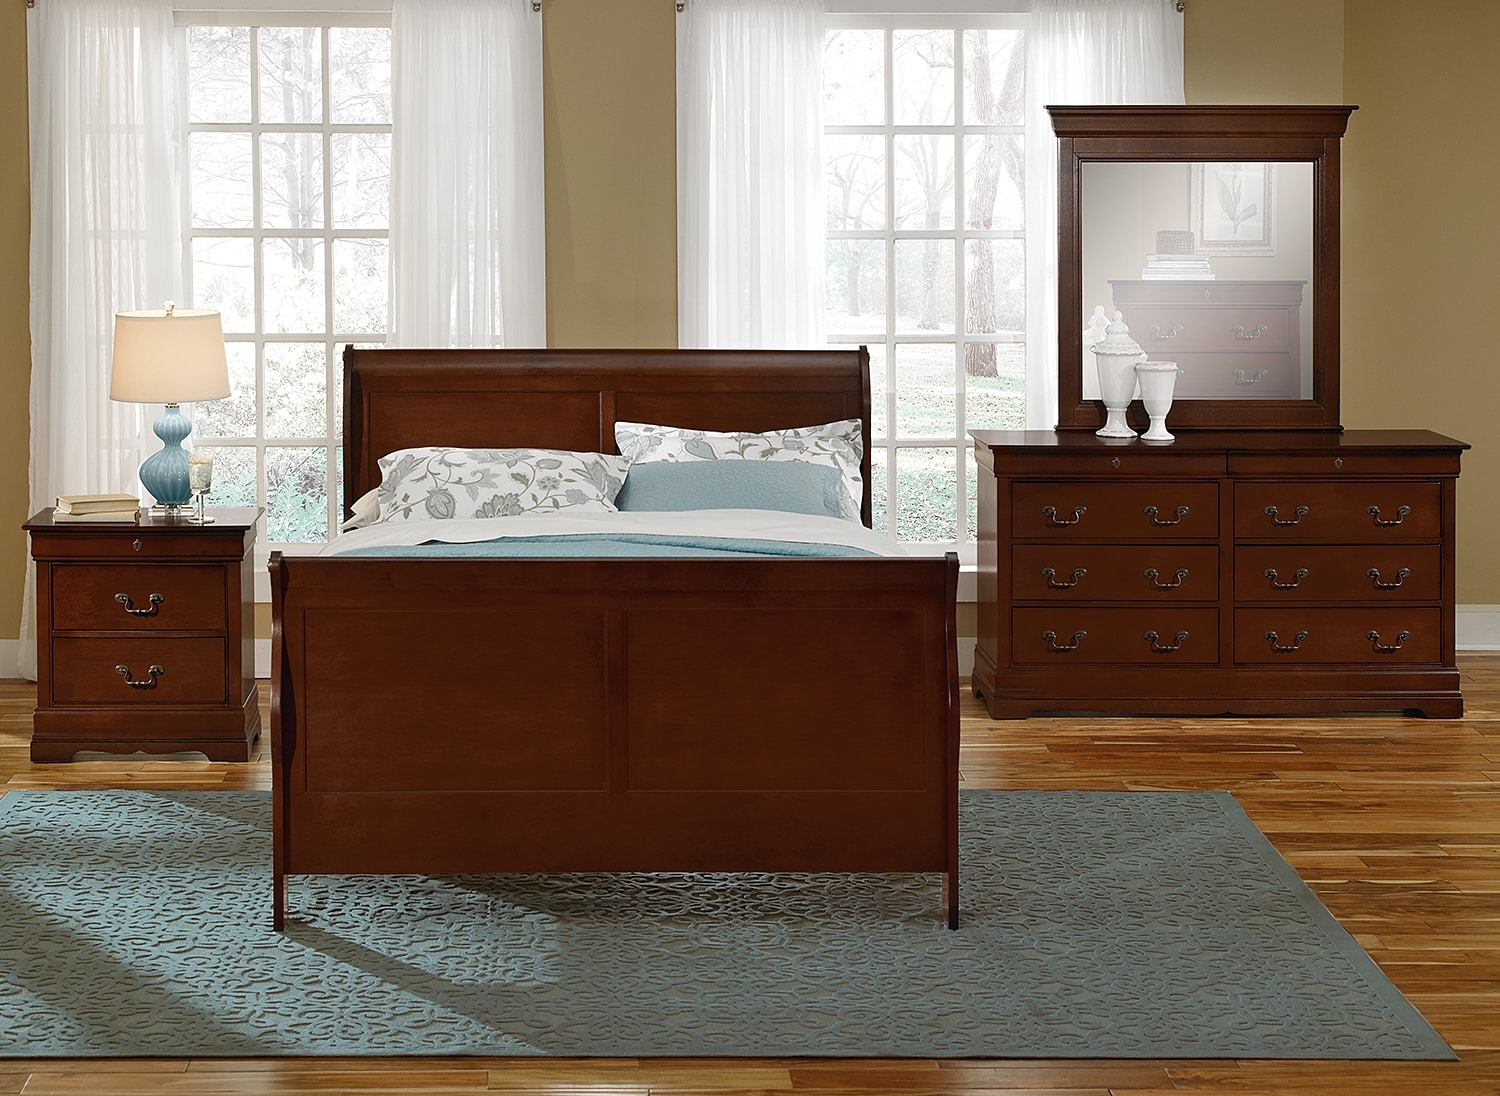 Neo classic youth 6 piece full bedroom set cherry for American classic bedroom